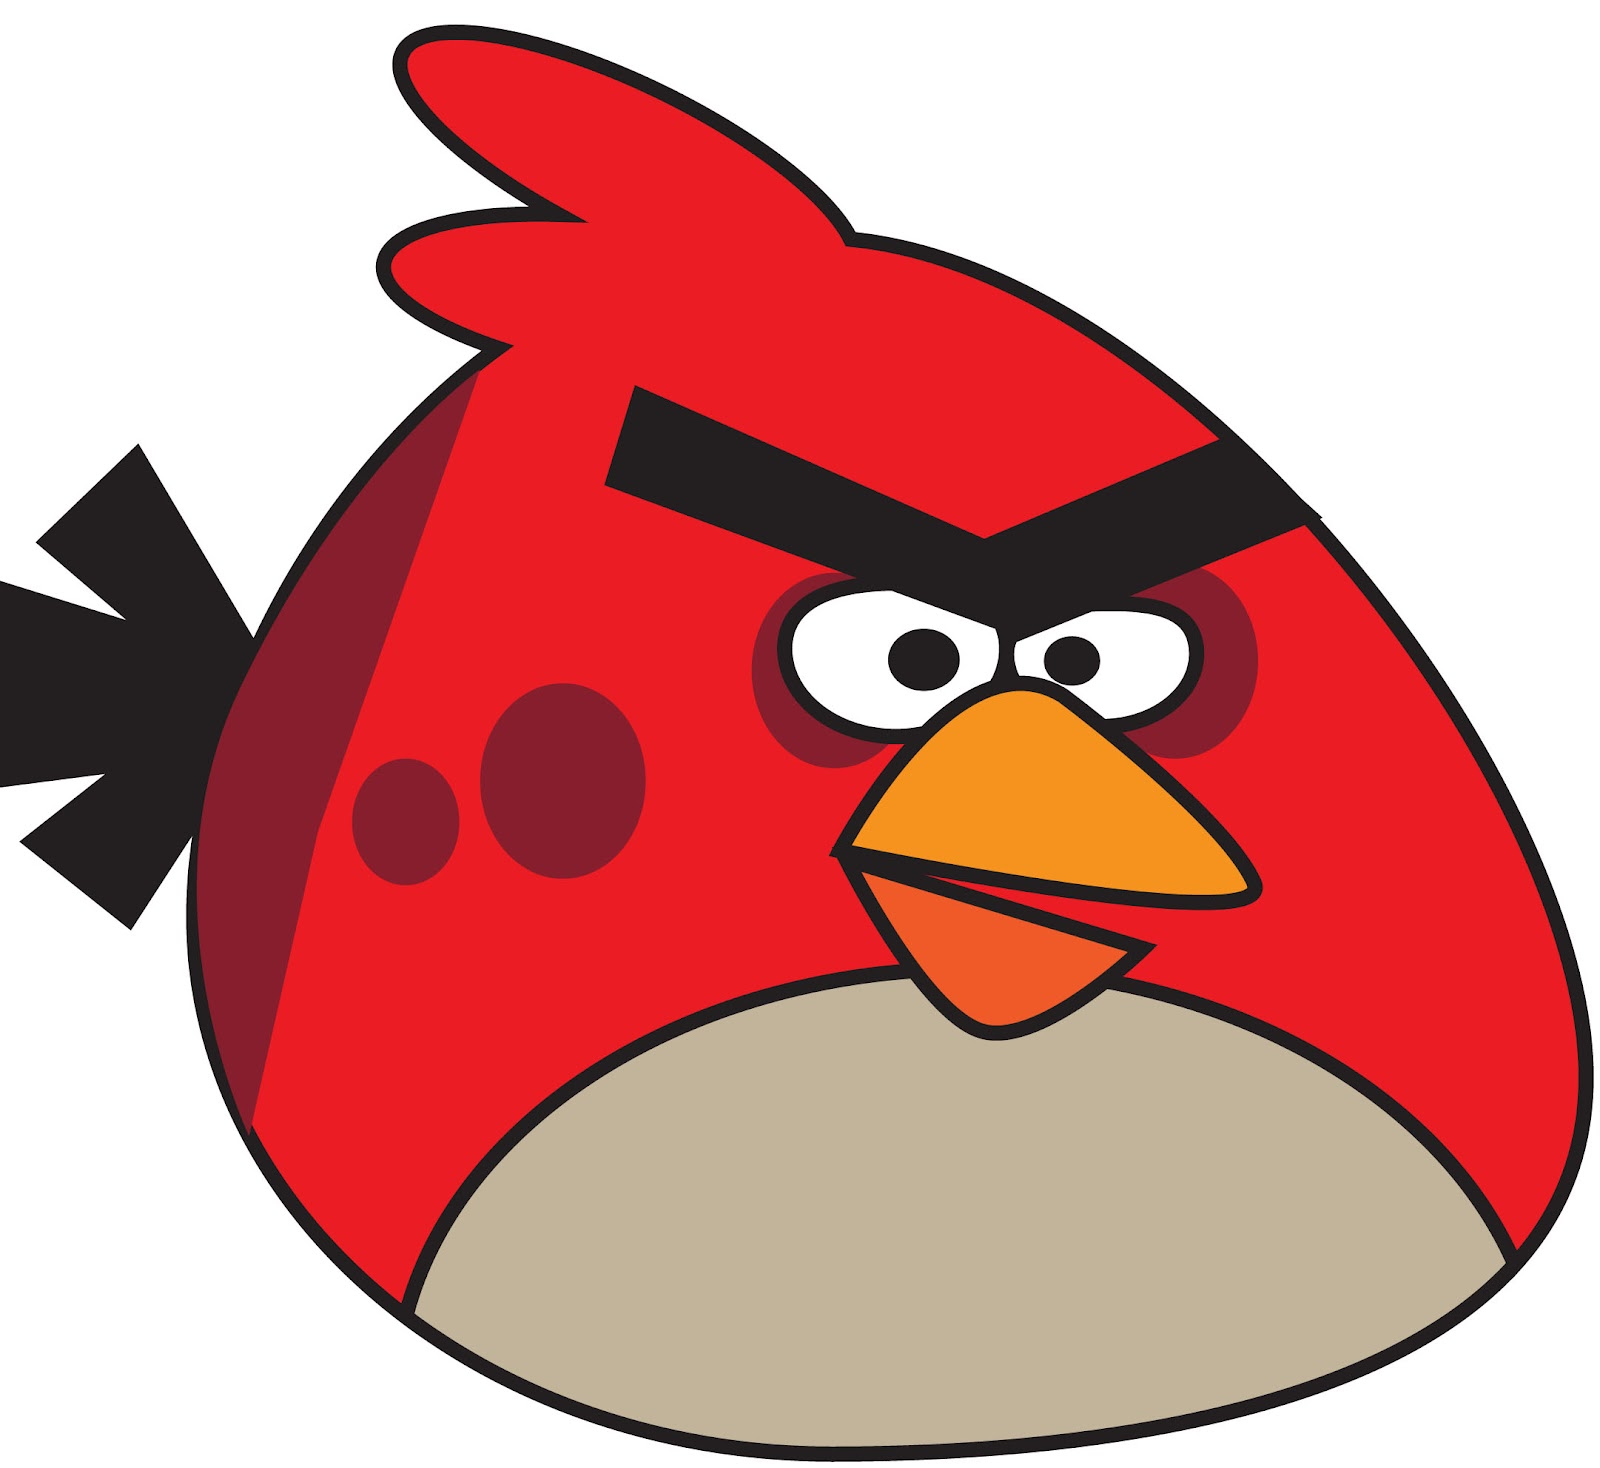 ART 141-M/W: Angry Birds in Illustrator